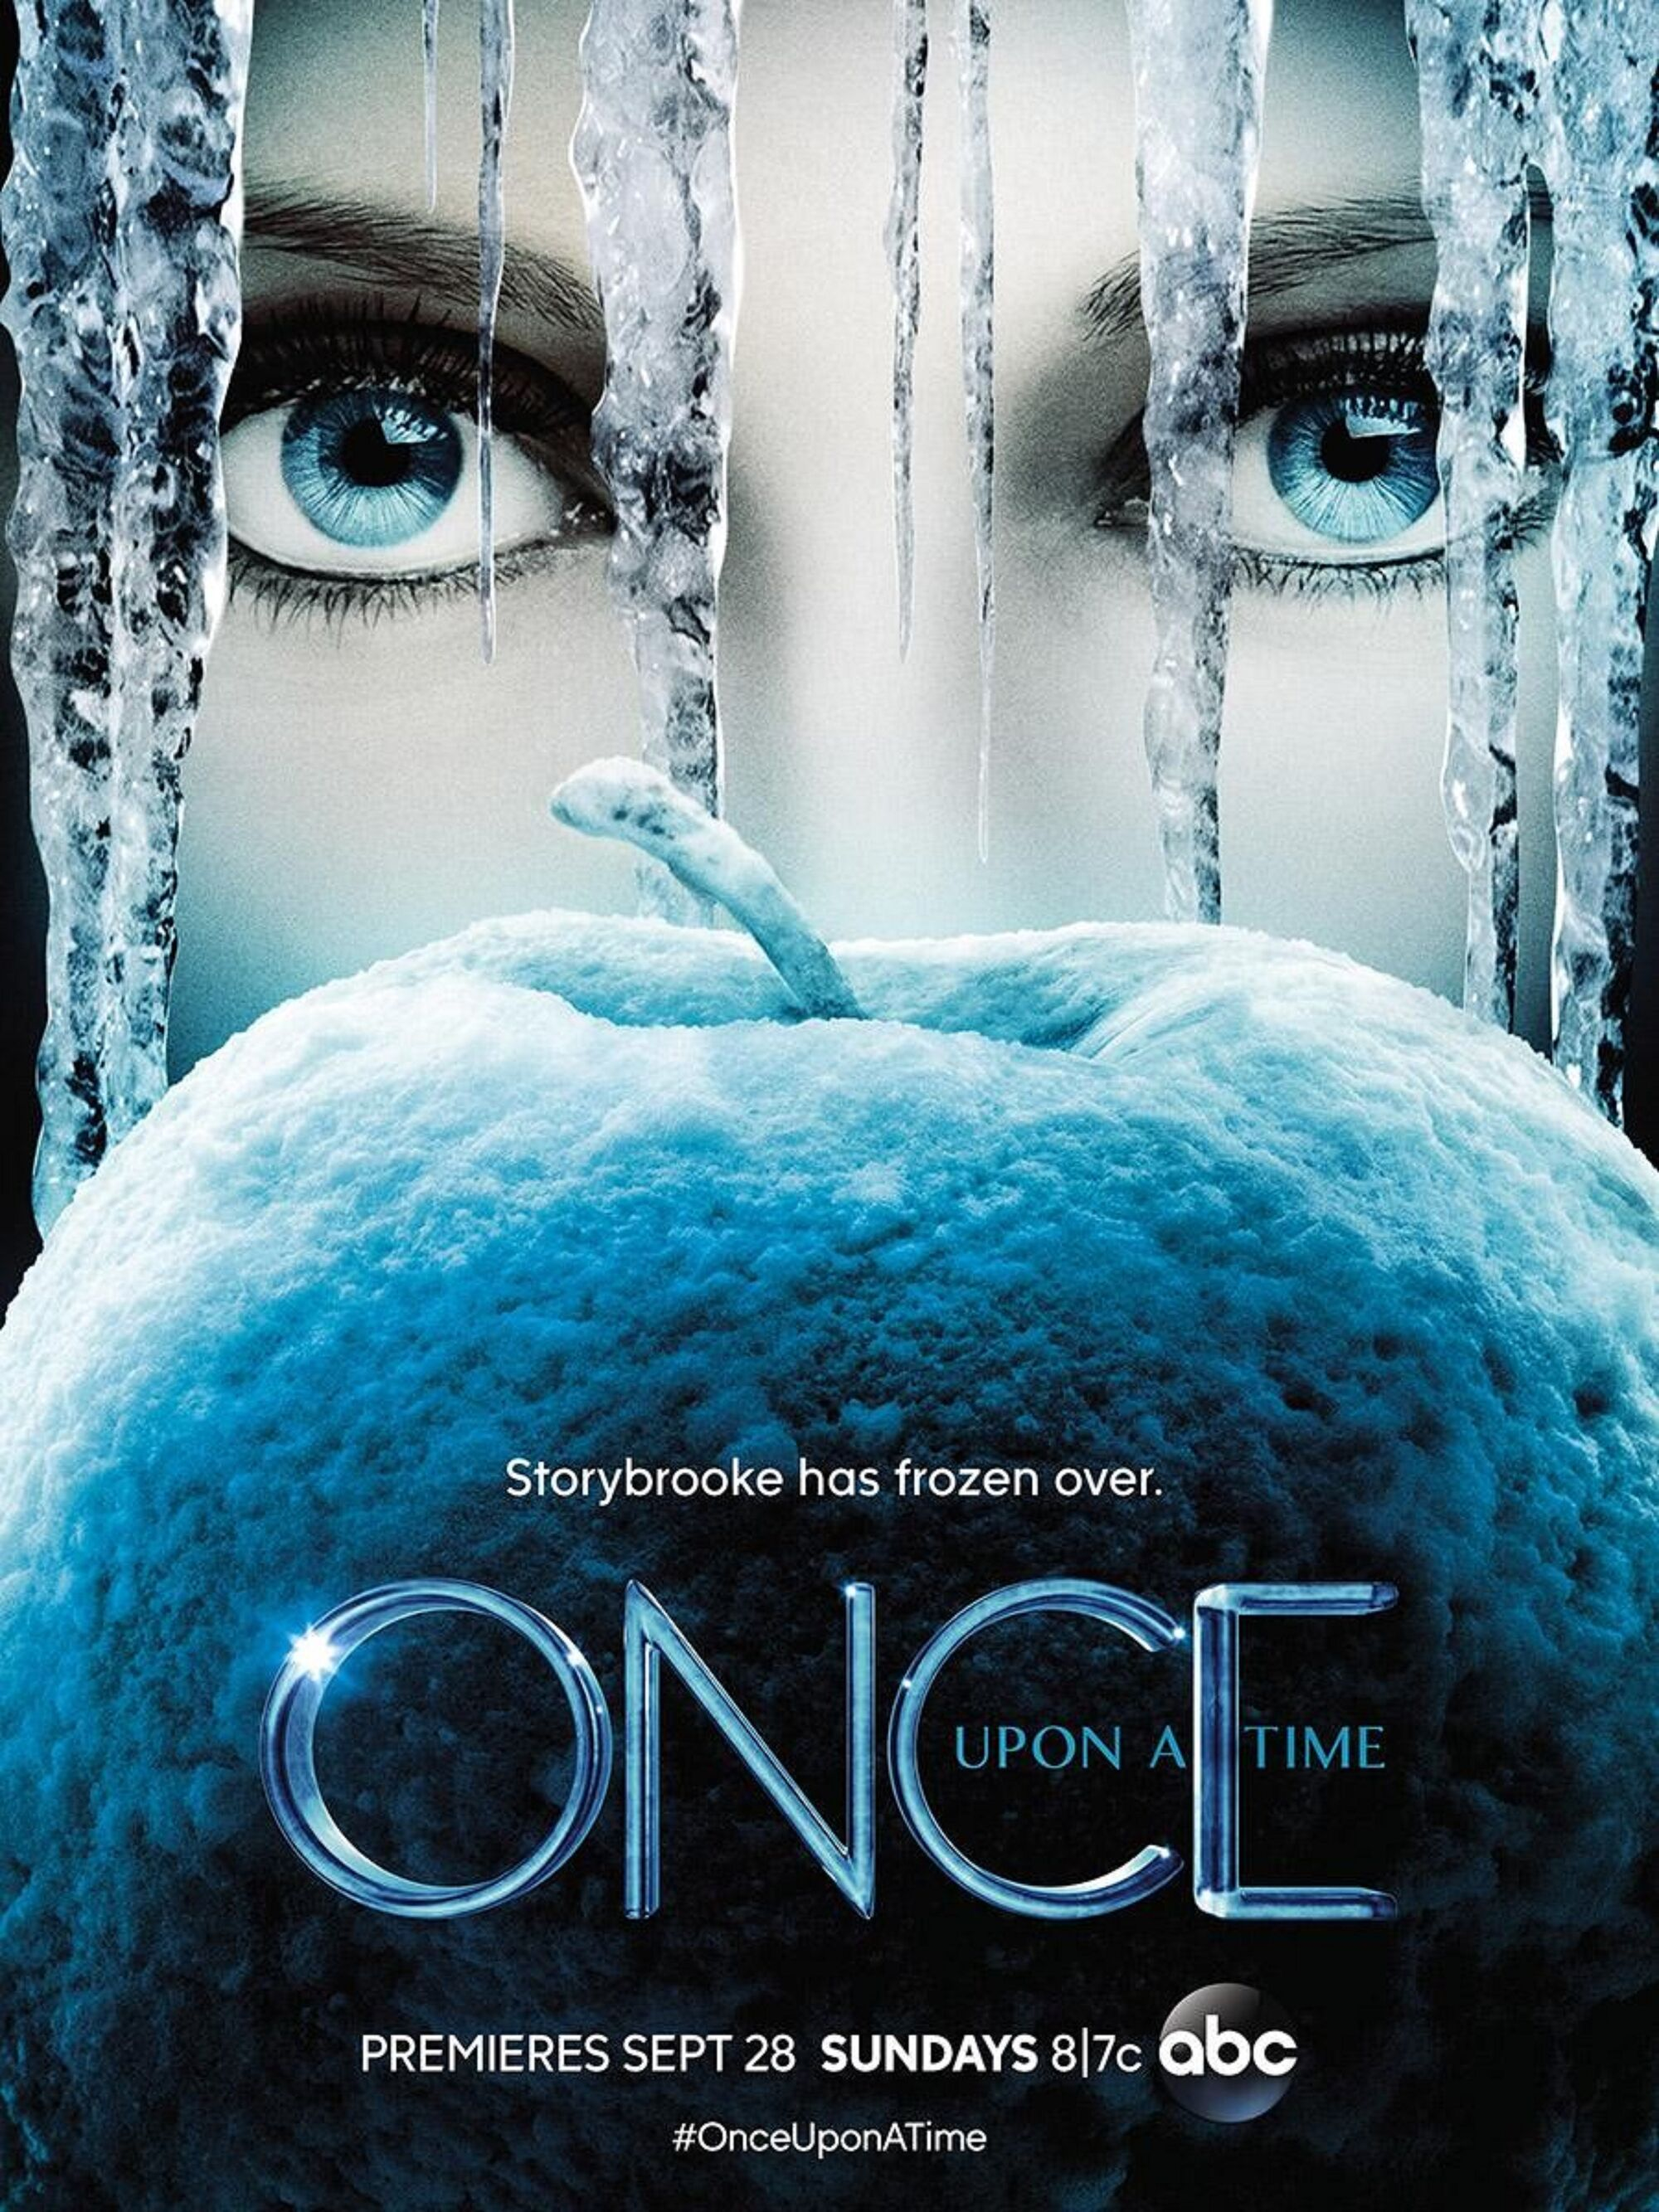 Cuarta temporada | Wiki Once Upon a Time | FANDOM powered by Wikia